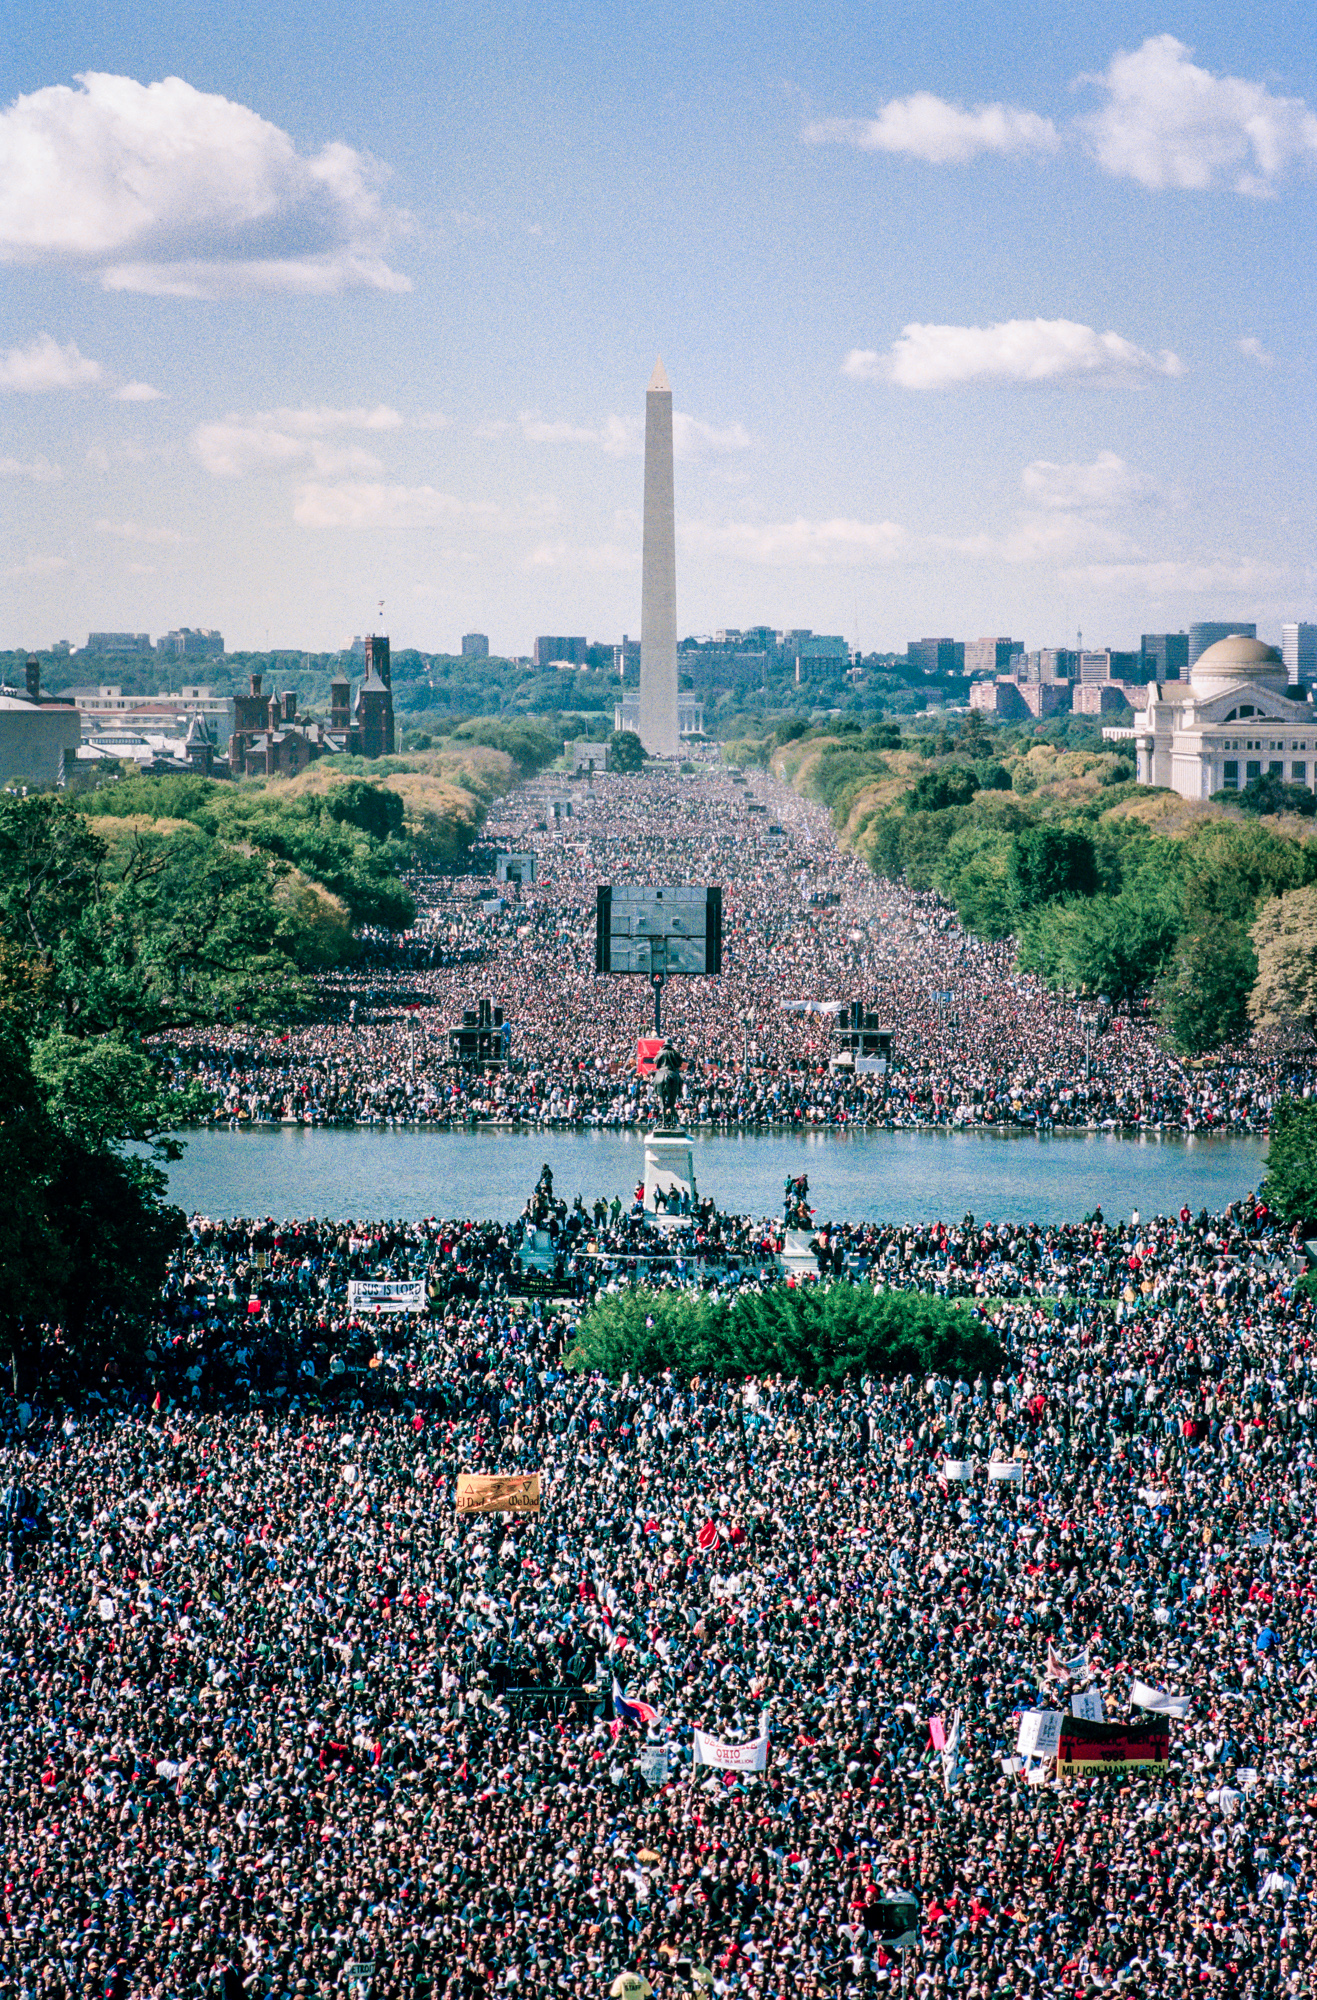 Black men fill the National Mall in Washington, DC during the Million Man March